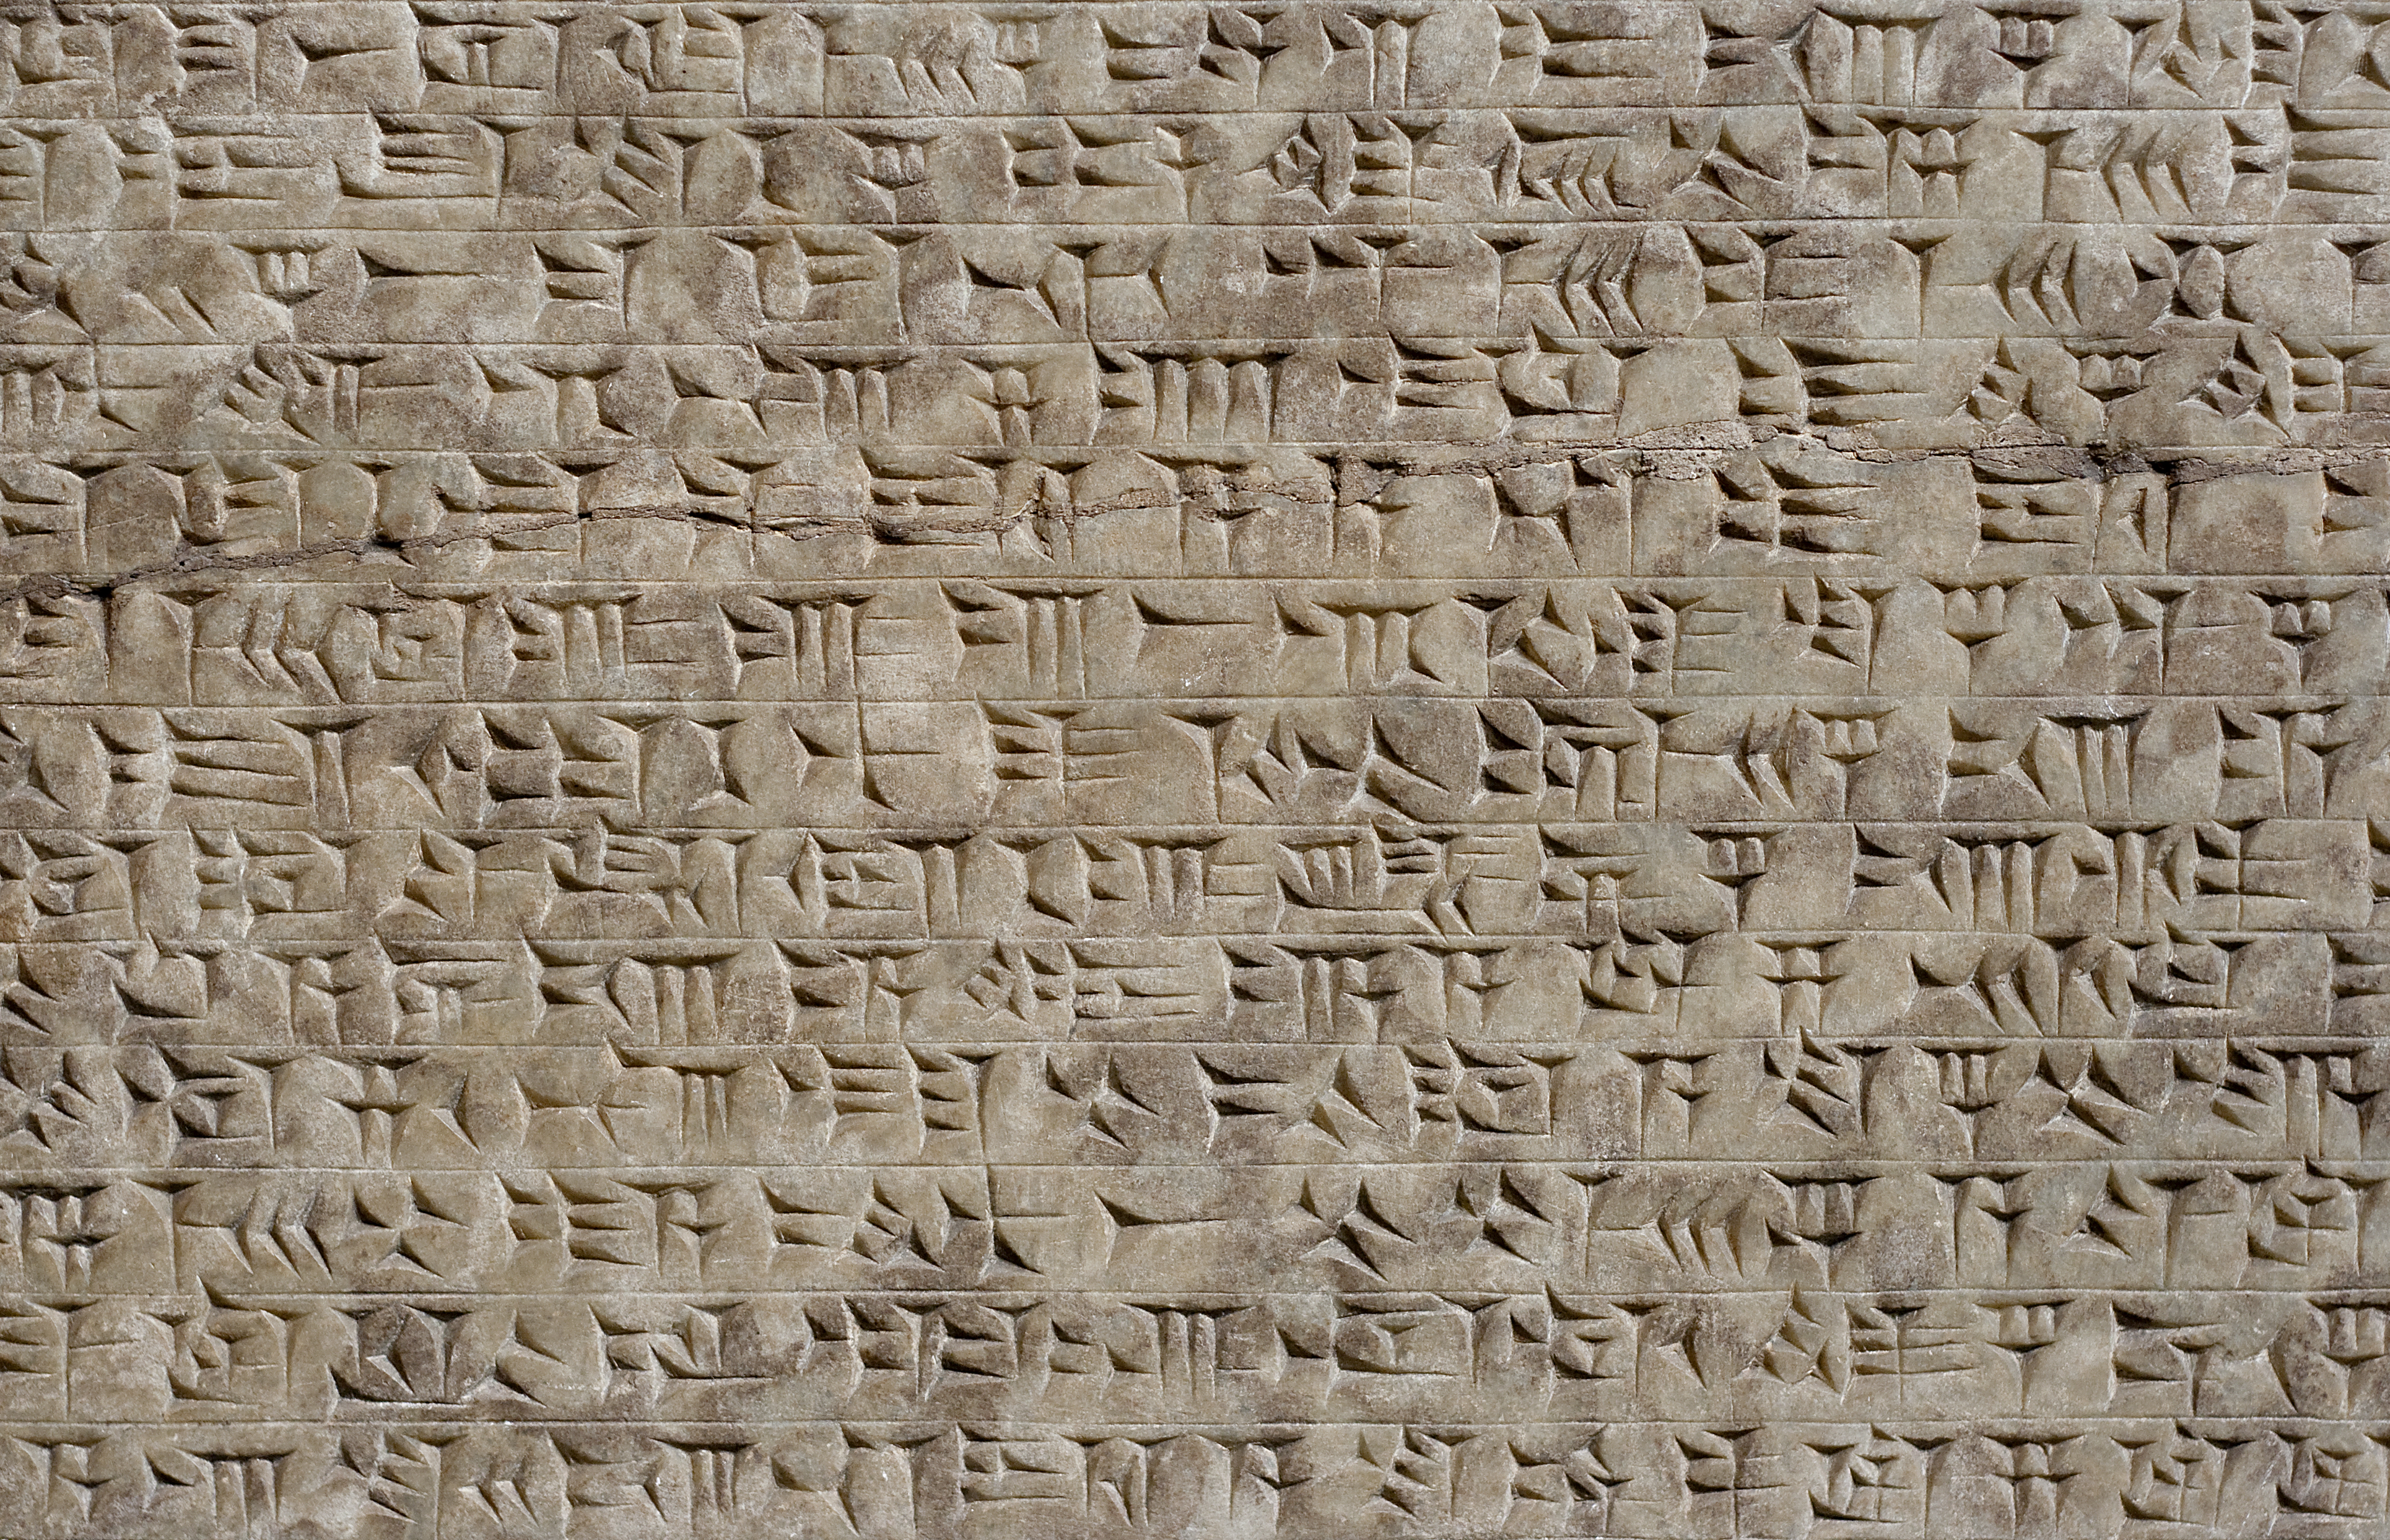 Anon. (The Babylonian Deluge)